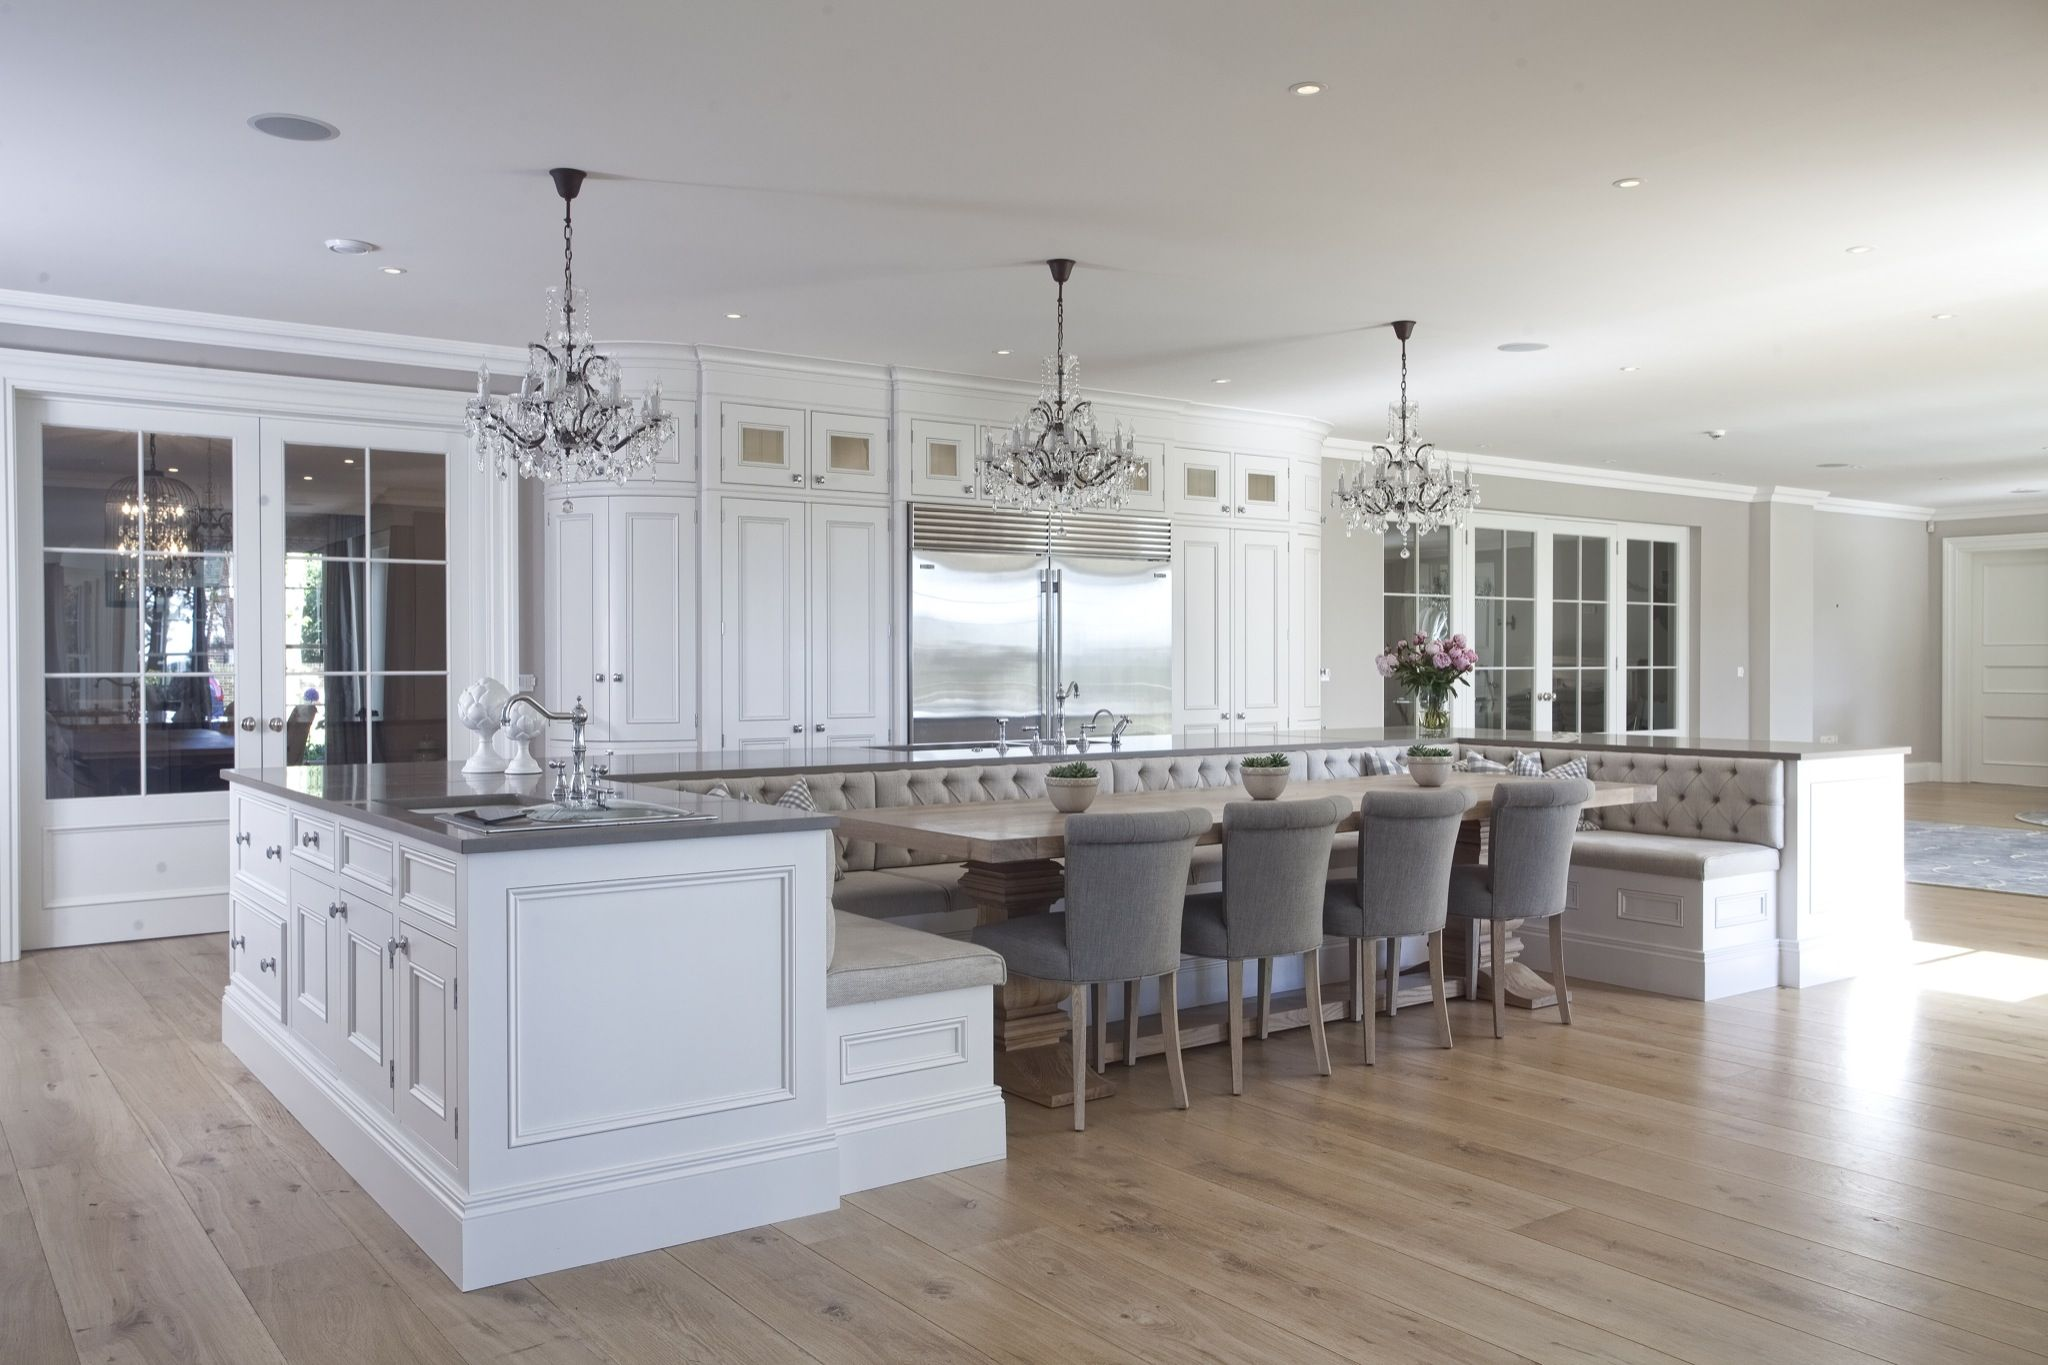 exciting kitchen island seating | 101 Custom Kitchen Designs With Islands - Page 7 of 11 ...